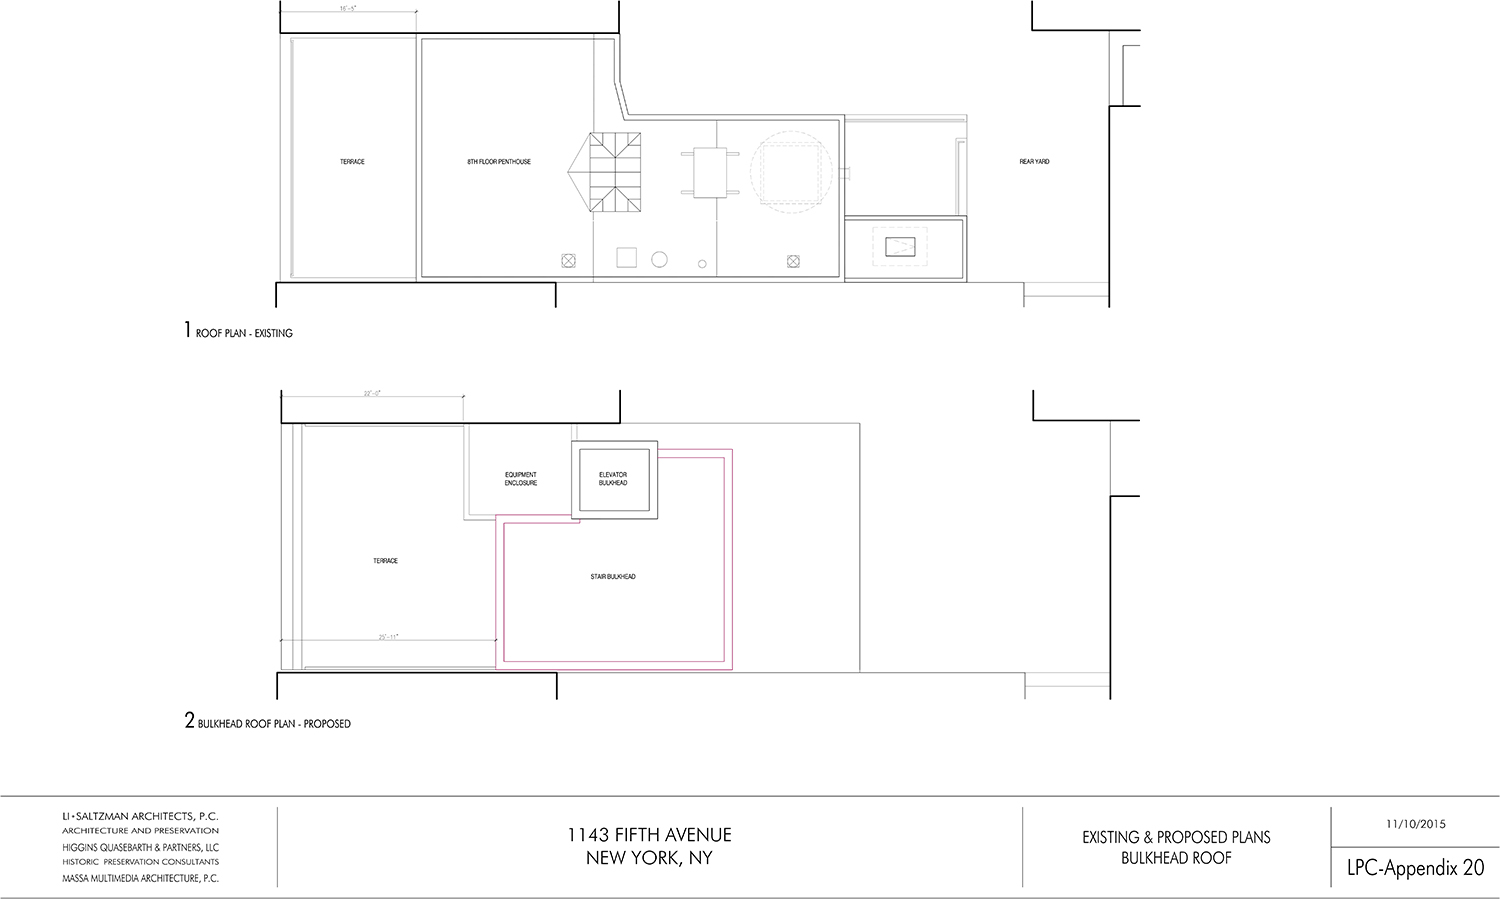 P:1143 5th AveDwgs�1_Current Drawings�9_LPC 01-02 Elev-Bldg